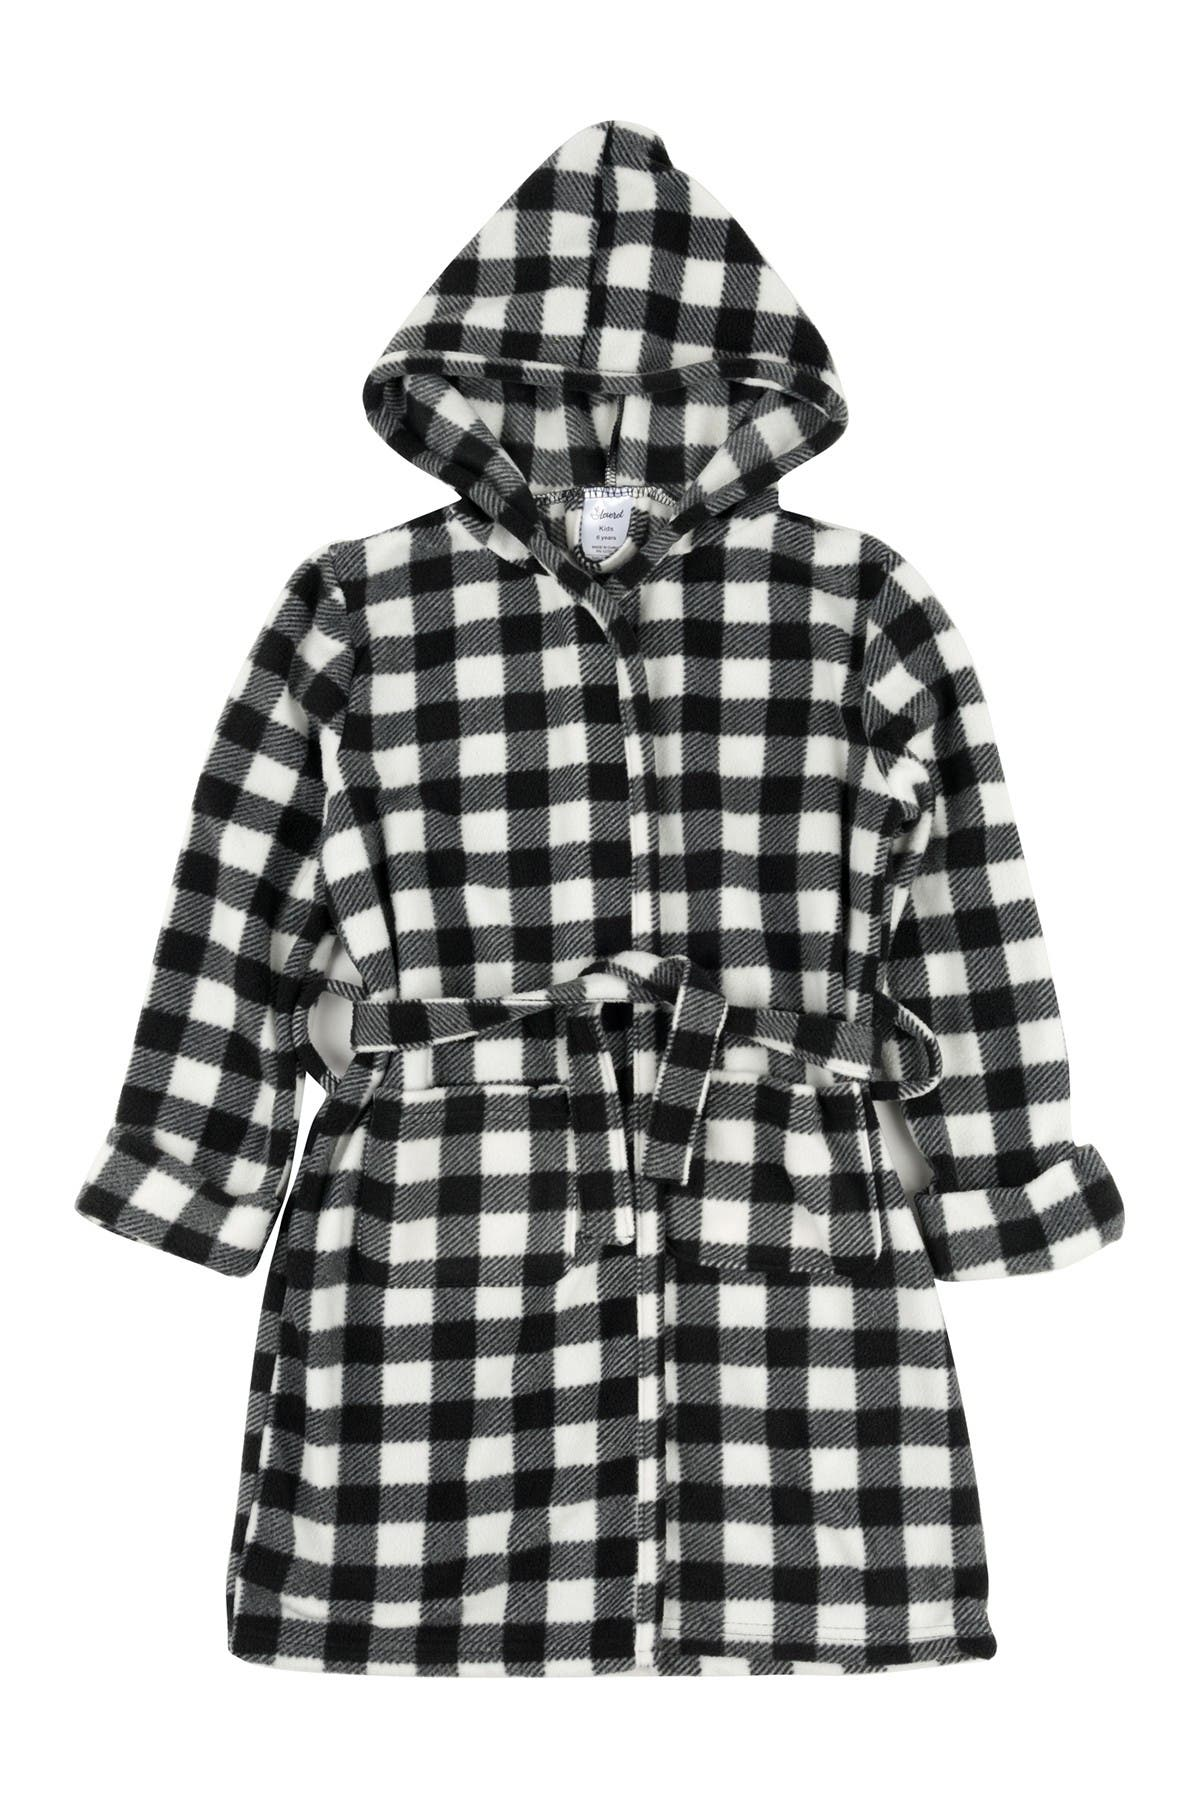 Image of Leveret Black and White Fleece Hooded Robe